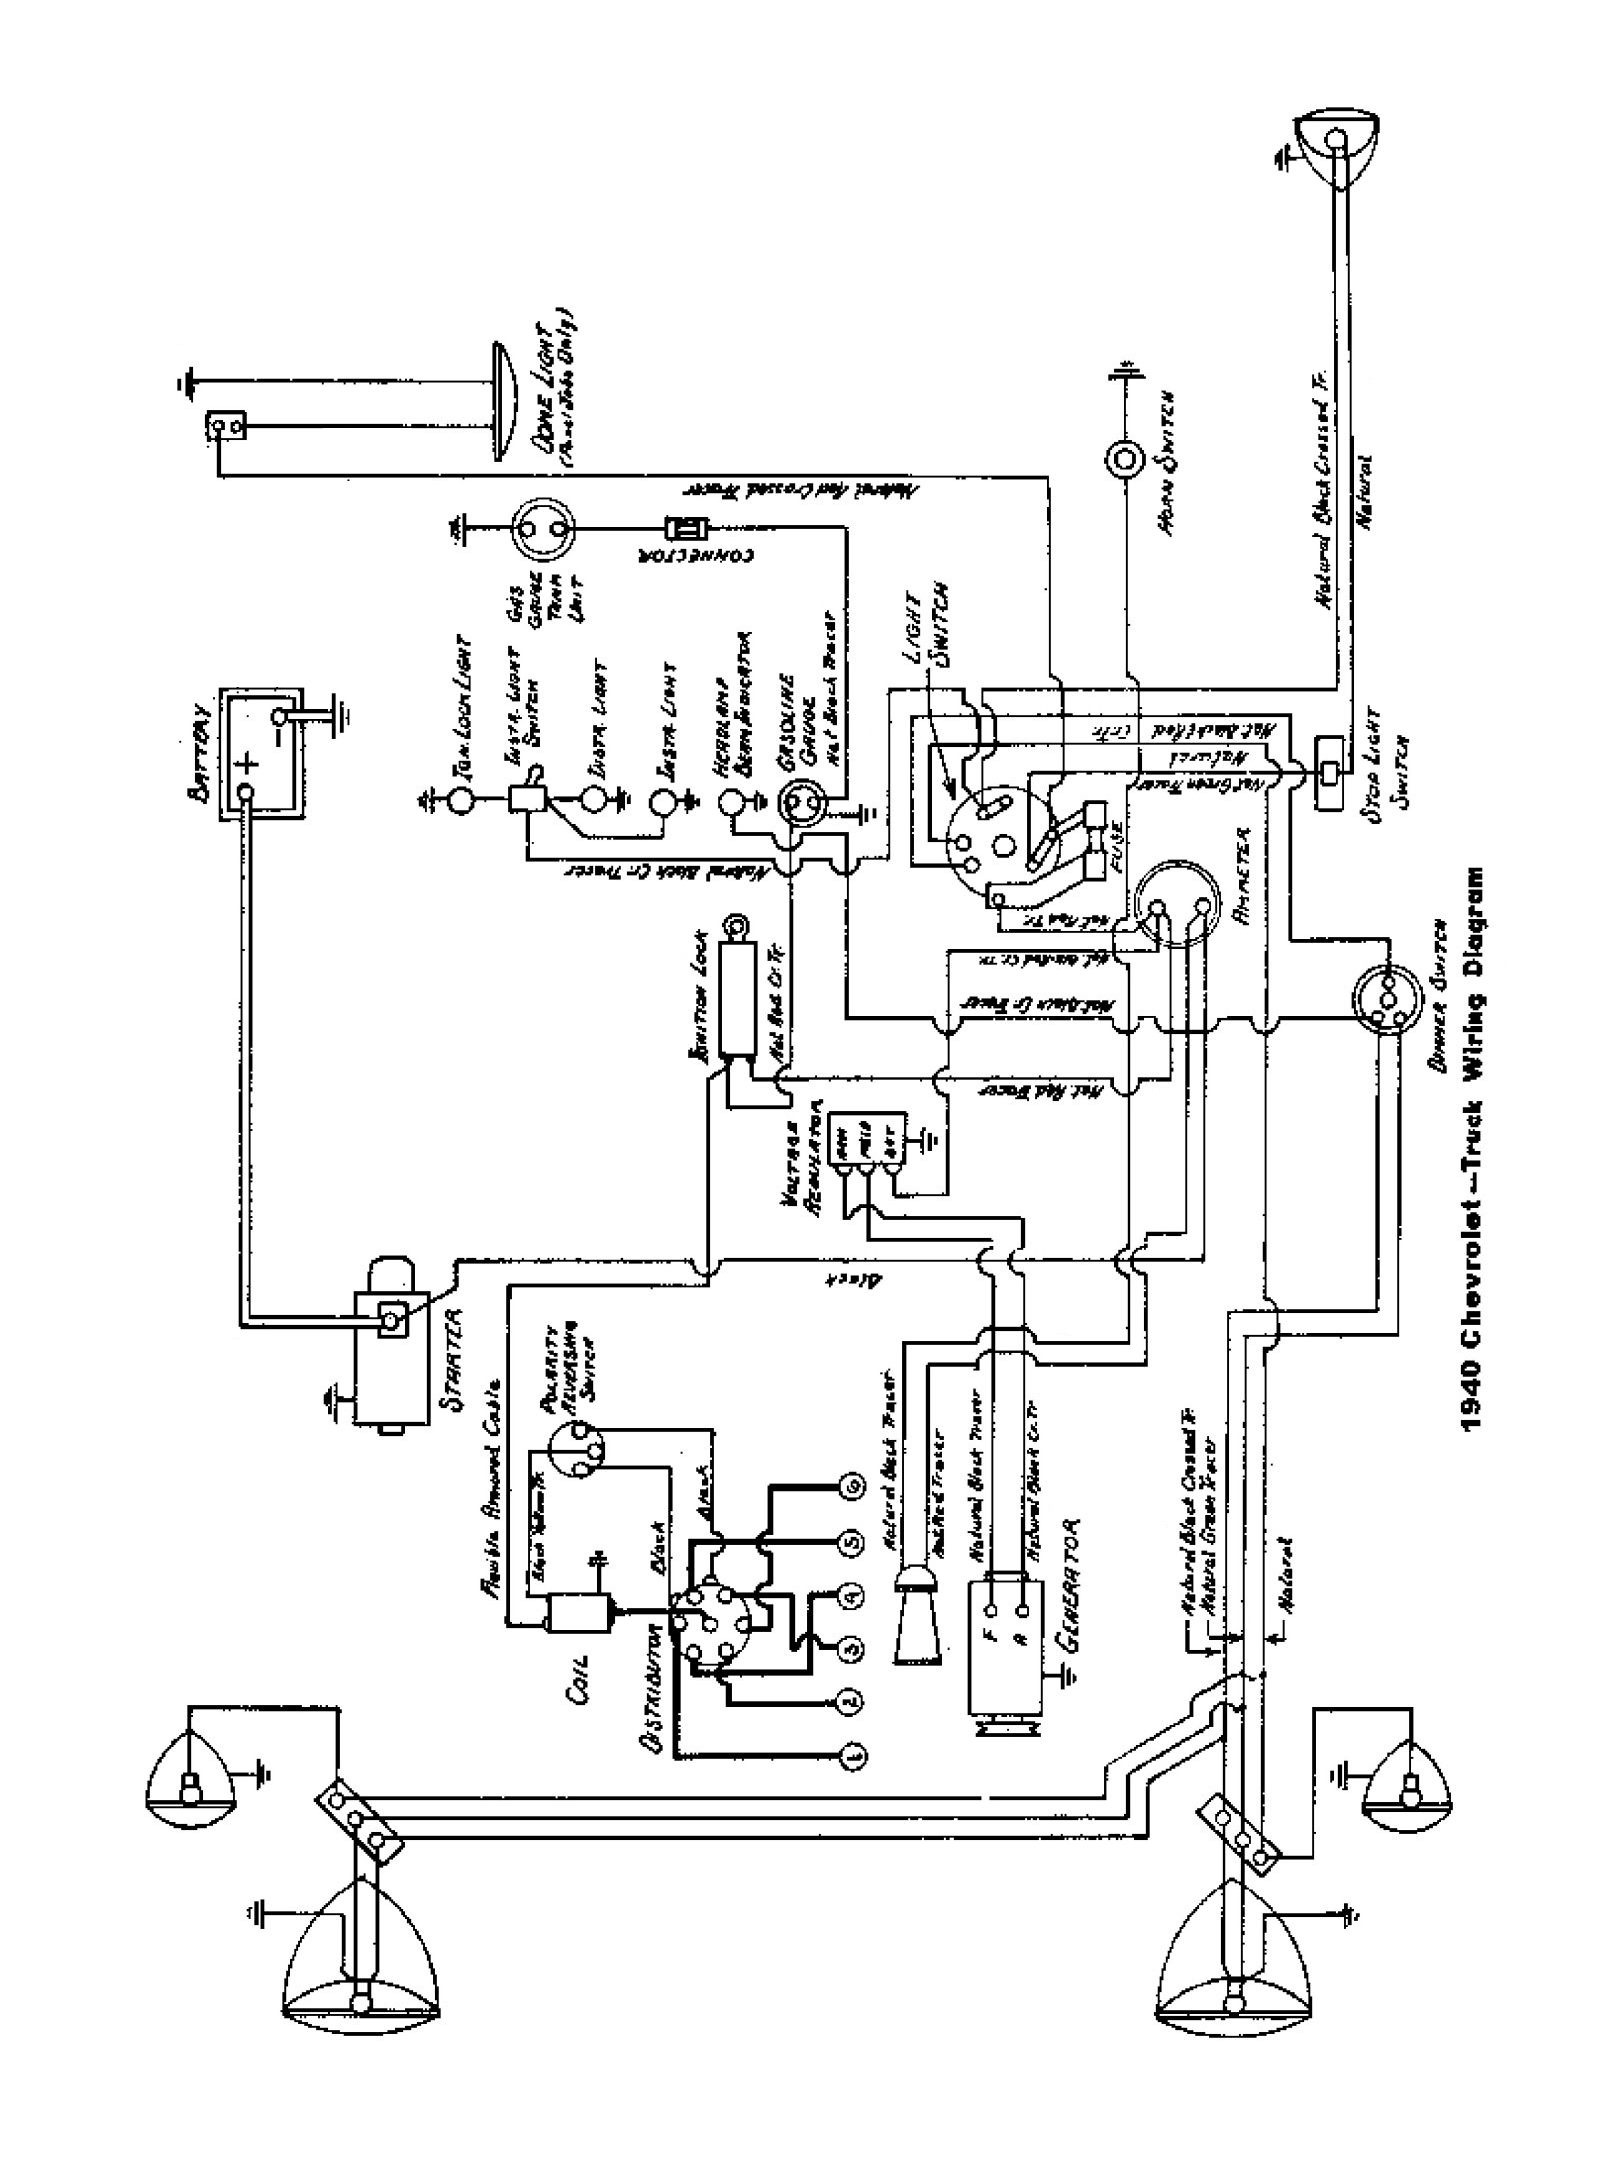 40truck chevy truck wiring diagram chevy wiring diagrams instruction 1957 chevrolet wiring diagram at gsmx.co